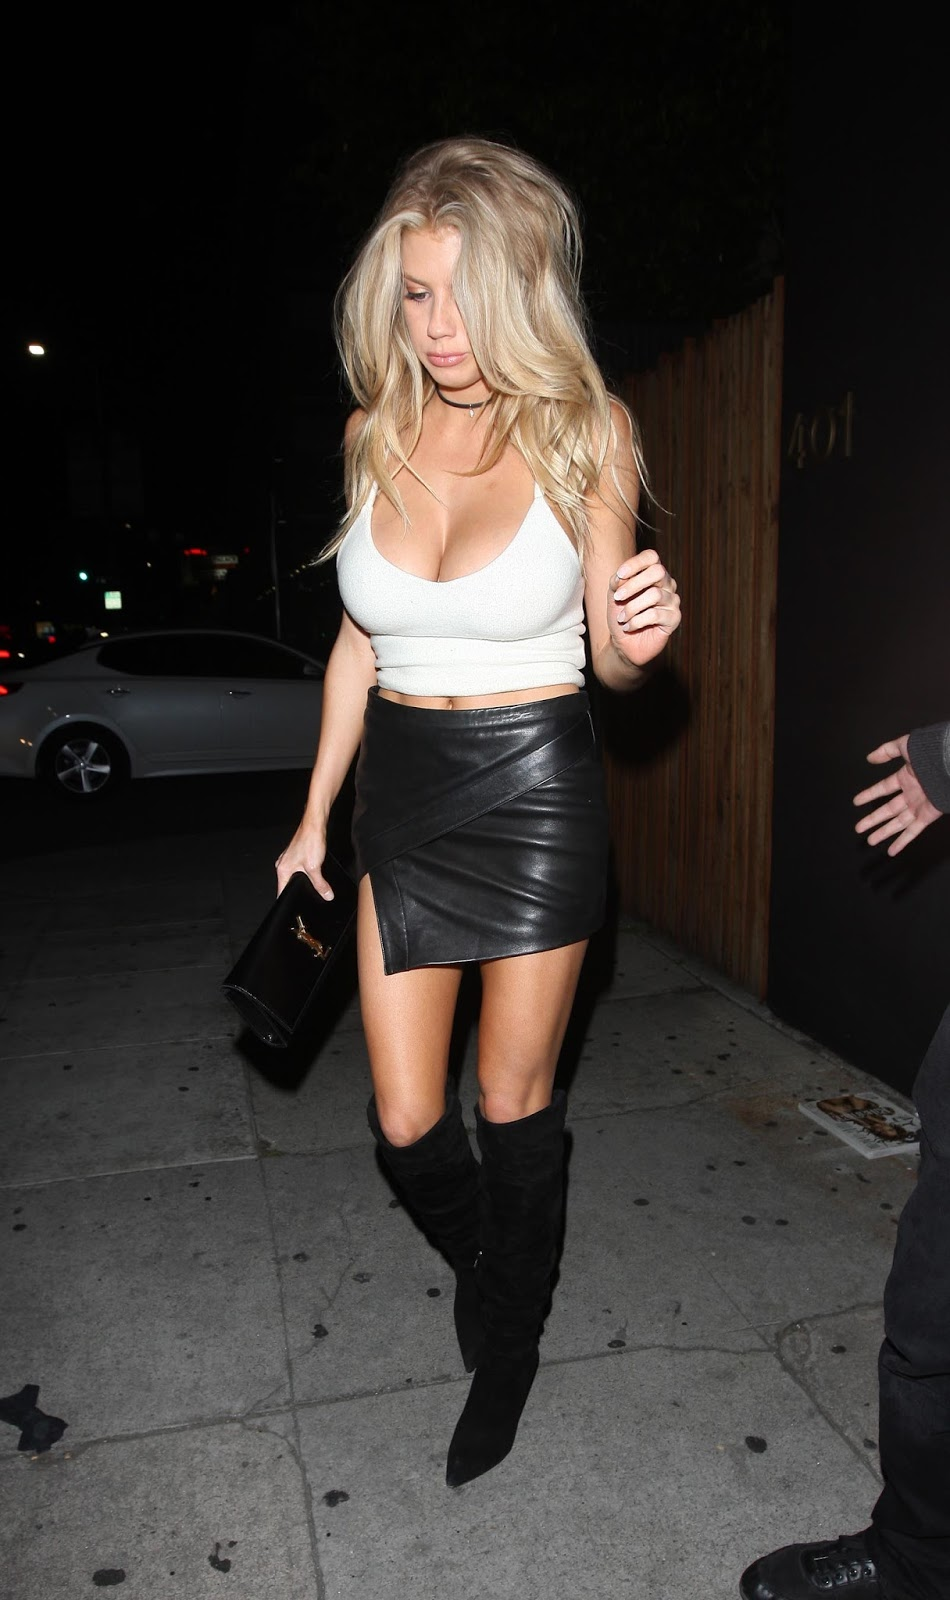 Charlotte McKinney at The Nice Guy - Photo Charlotte McKinney 2016